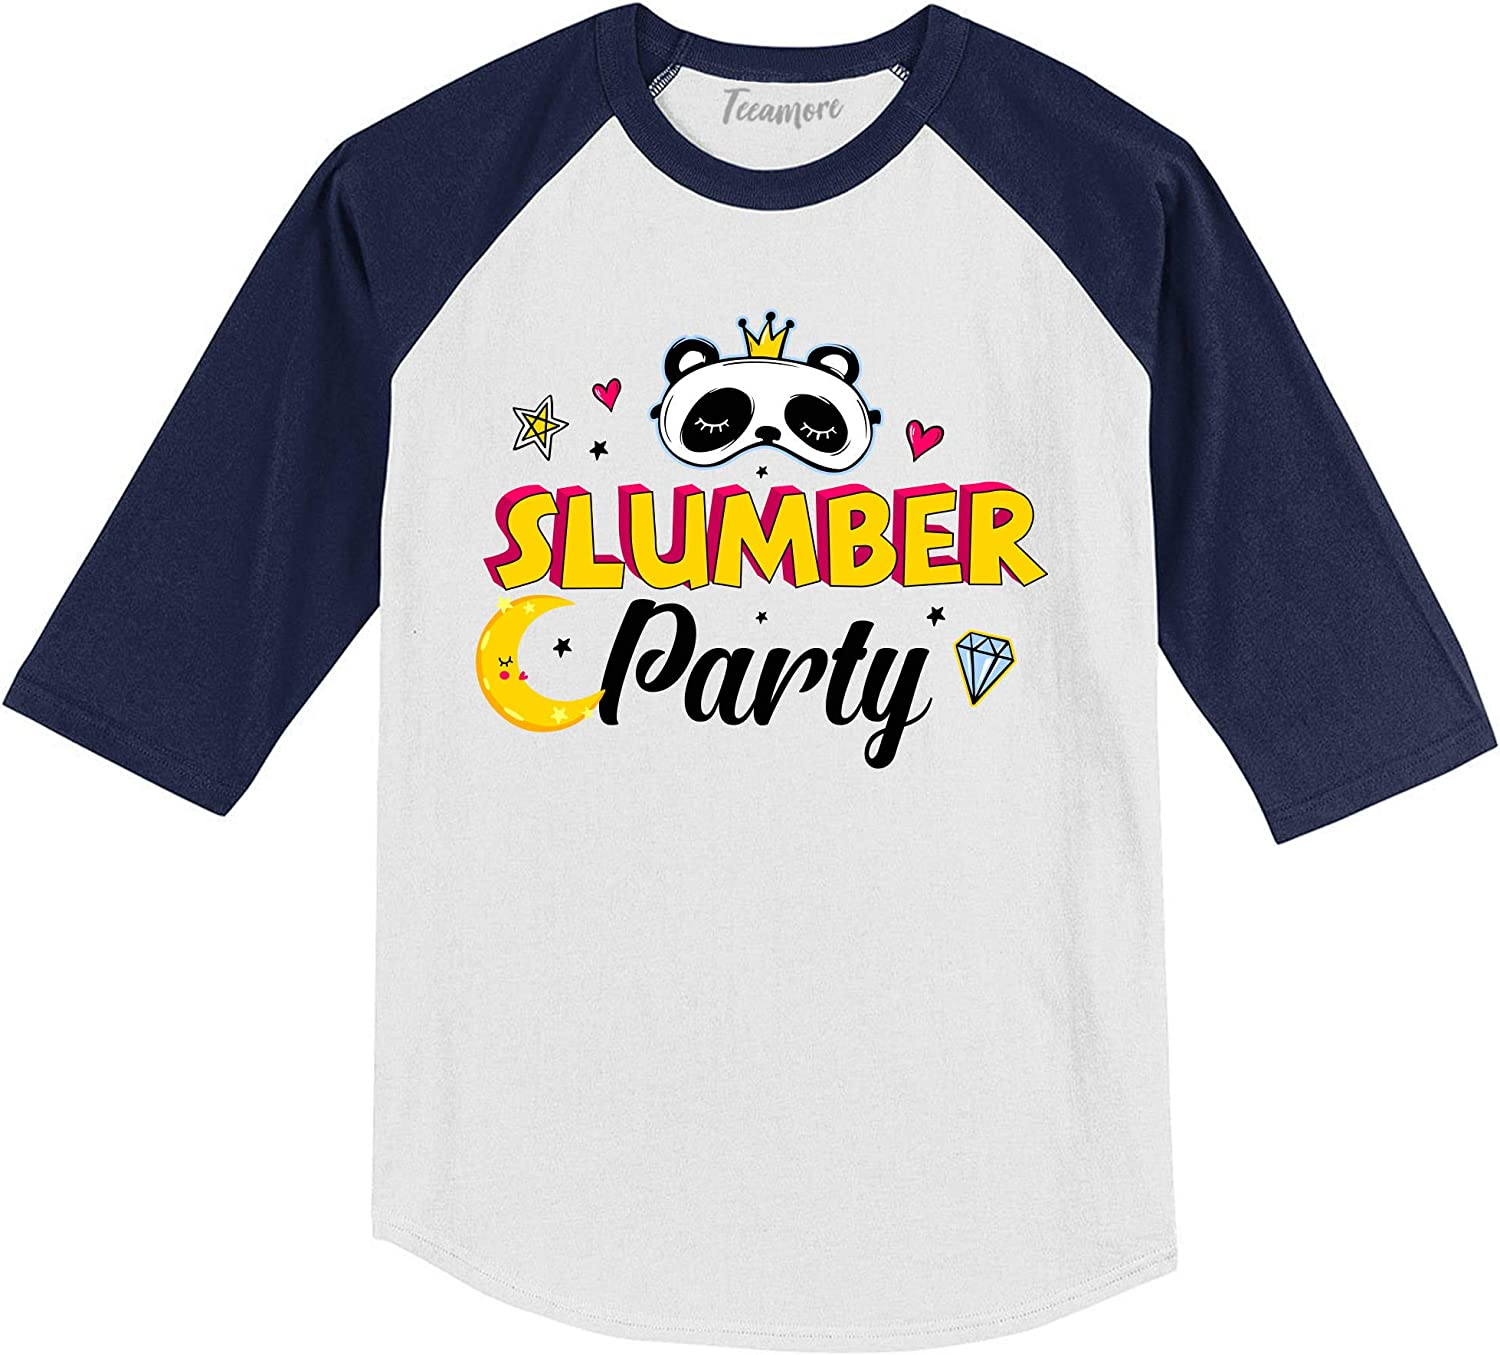 TEEAMORE Slumber Party Sleepover Squad Pajama Party Toddler Girls T-Shirt